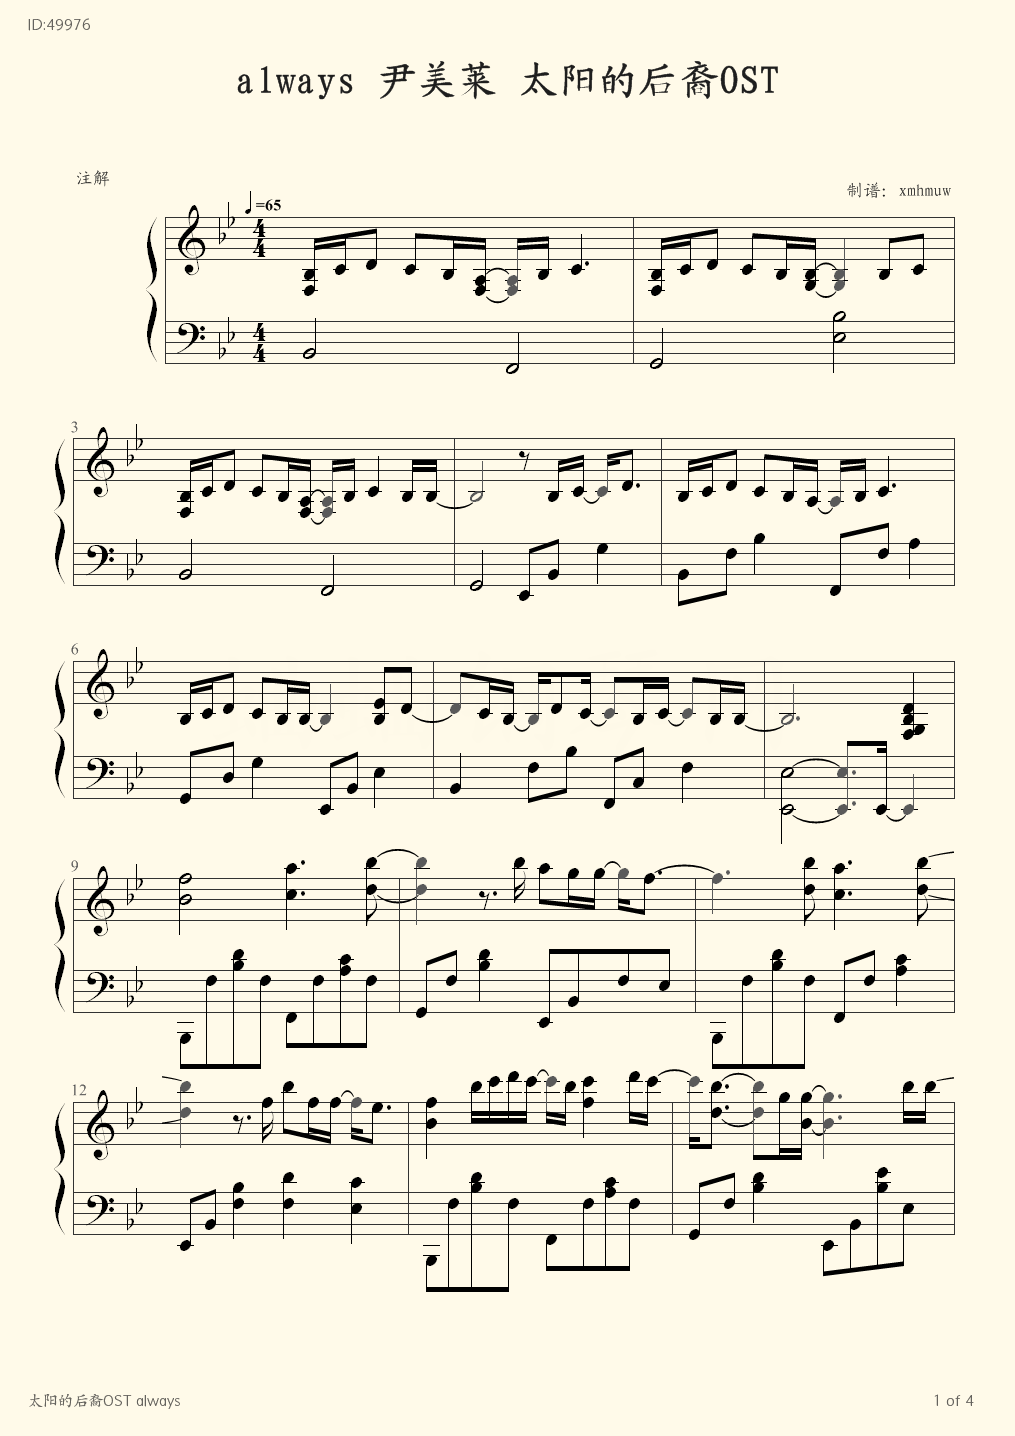 OST always - Touch love - first page